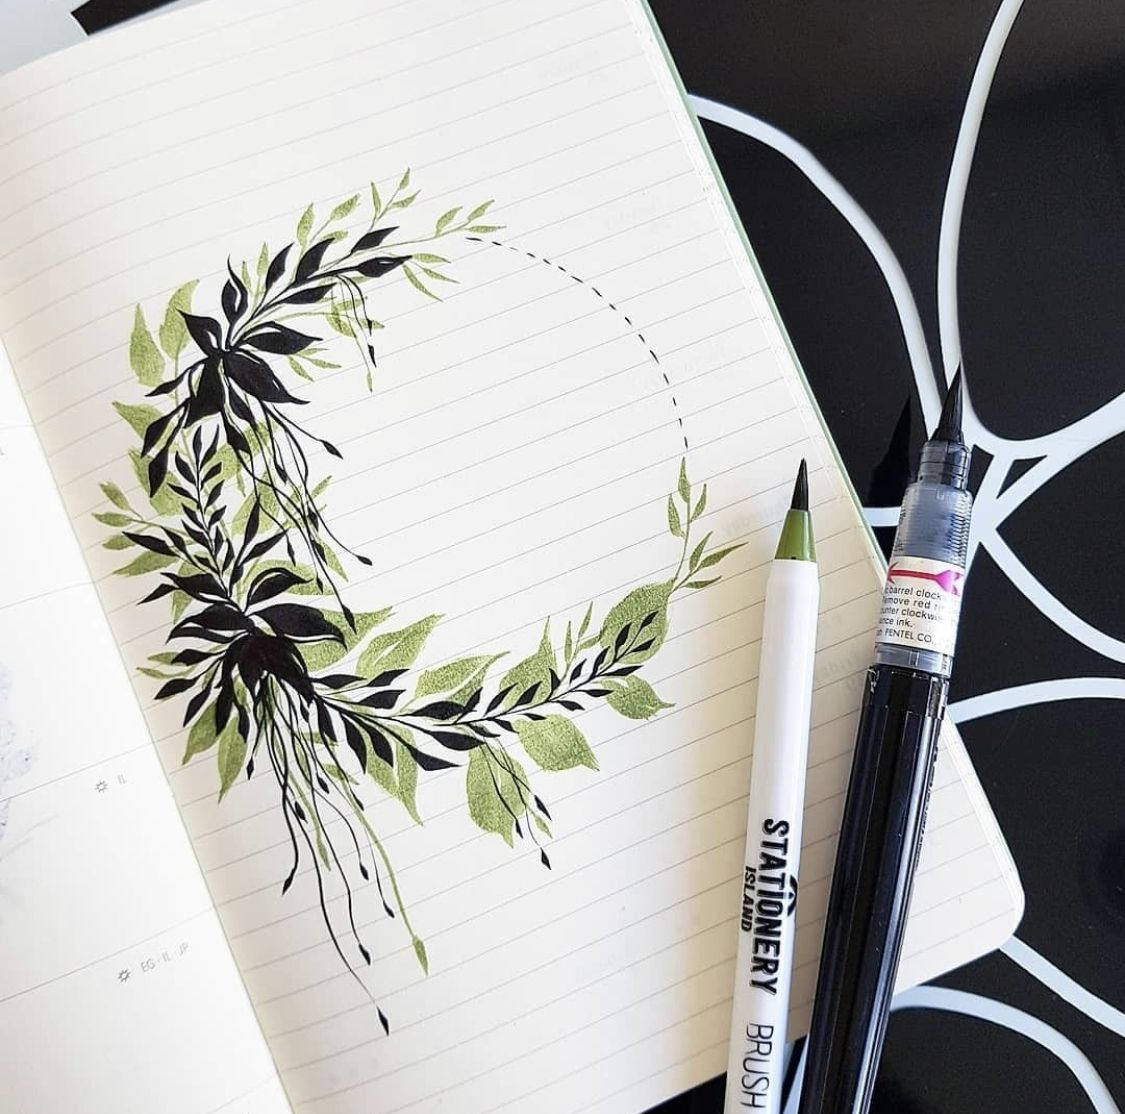 Brush Pen Wreath Bullet Journal Art Brush Pen Art Bullet